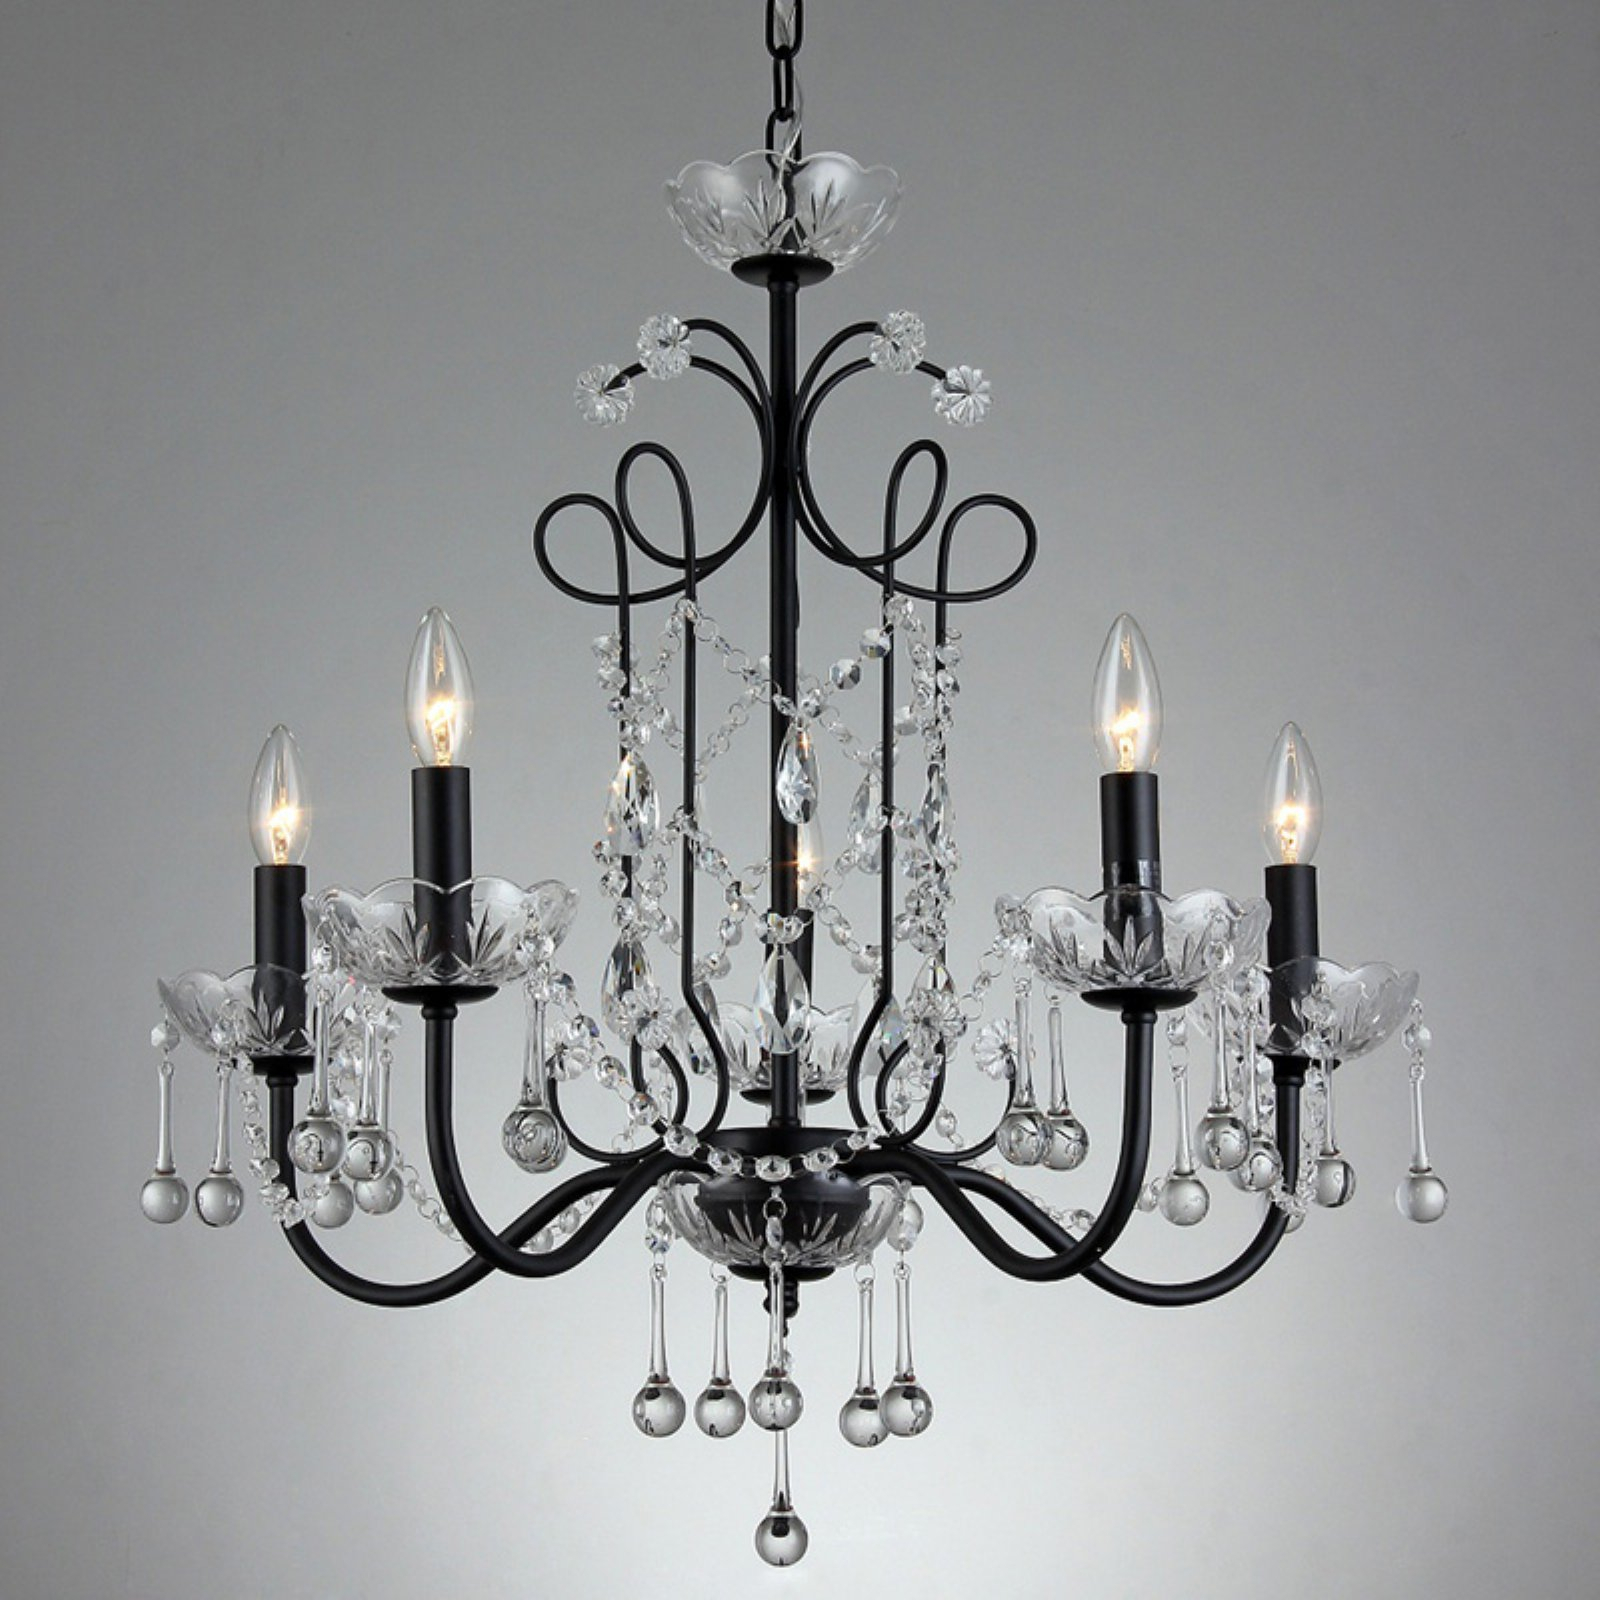 Warehouse Of Tiffany Donna Su7201-5 Chandelier   Products In regarding Shaylee 8-Light Candle Style Chandeliers (Image 28 of 30)